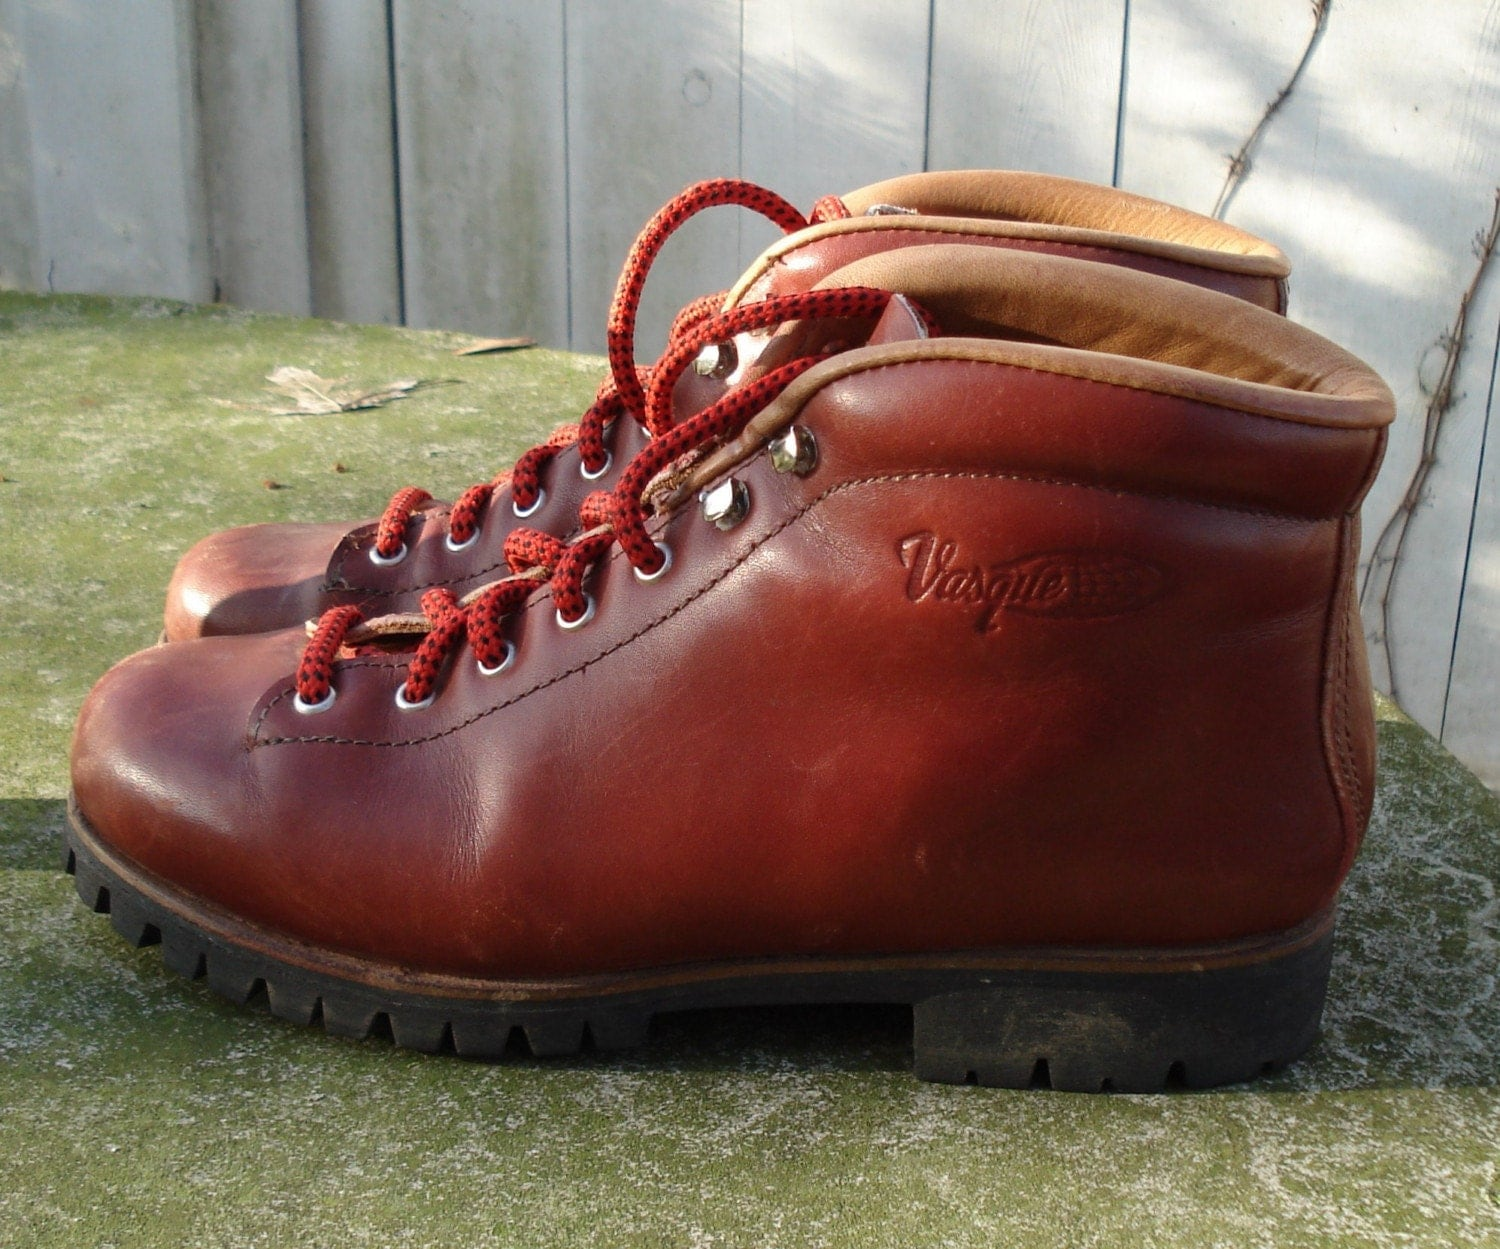 vintage vasque leather hiking boots made in italy gorgeous. Black Bedroom Furniture Sets. Home Design Ideas